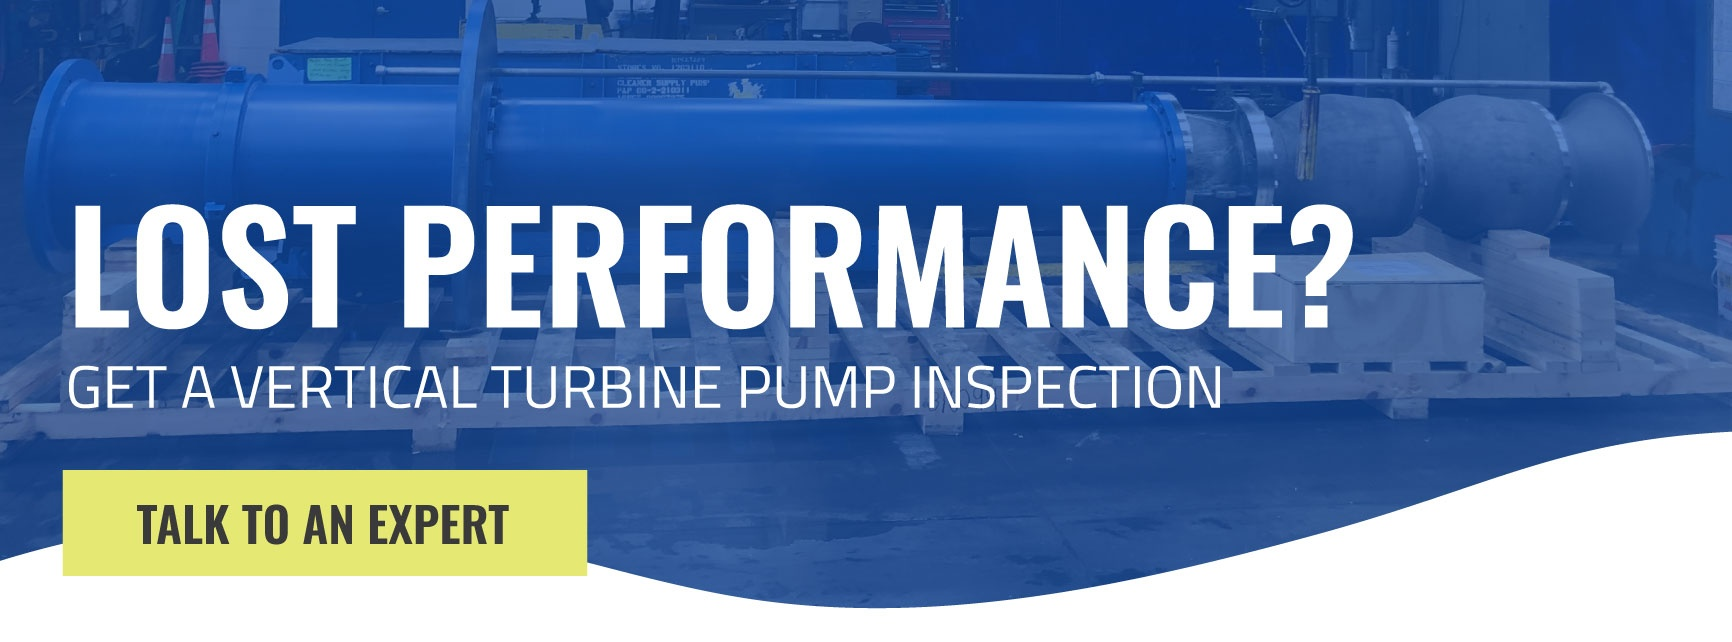 Lost Performance? Get a vertical turbine pump inspection.